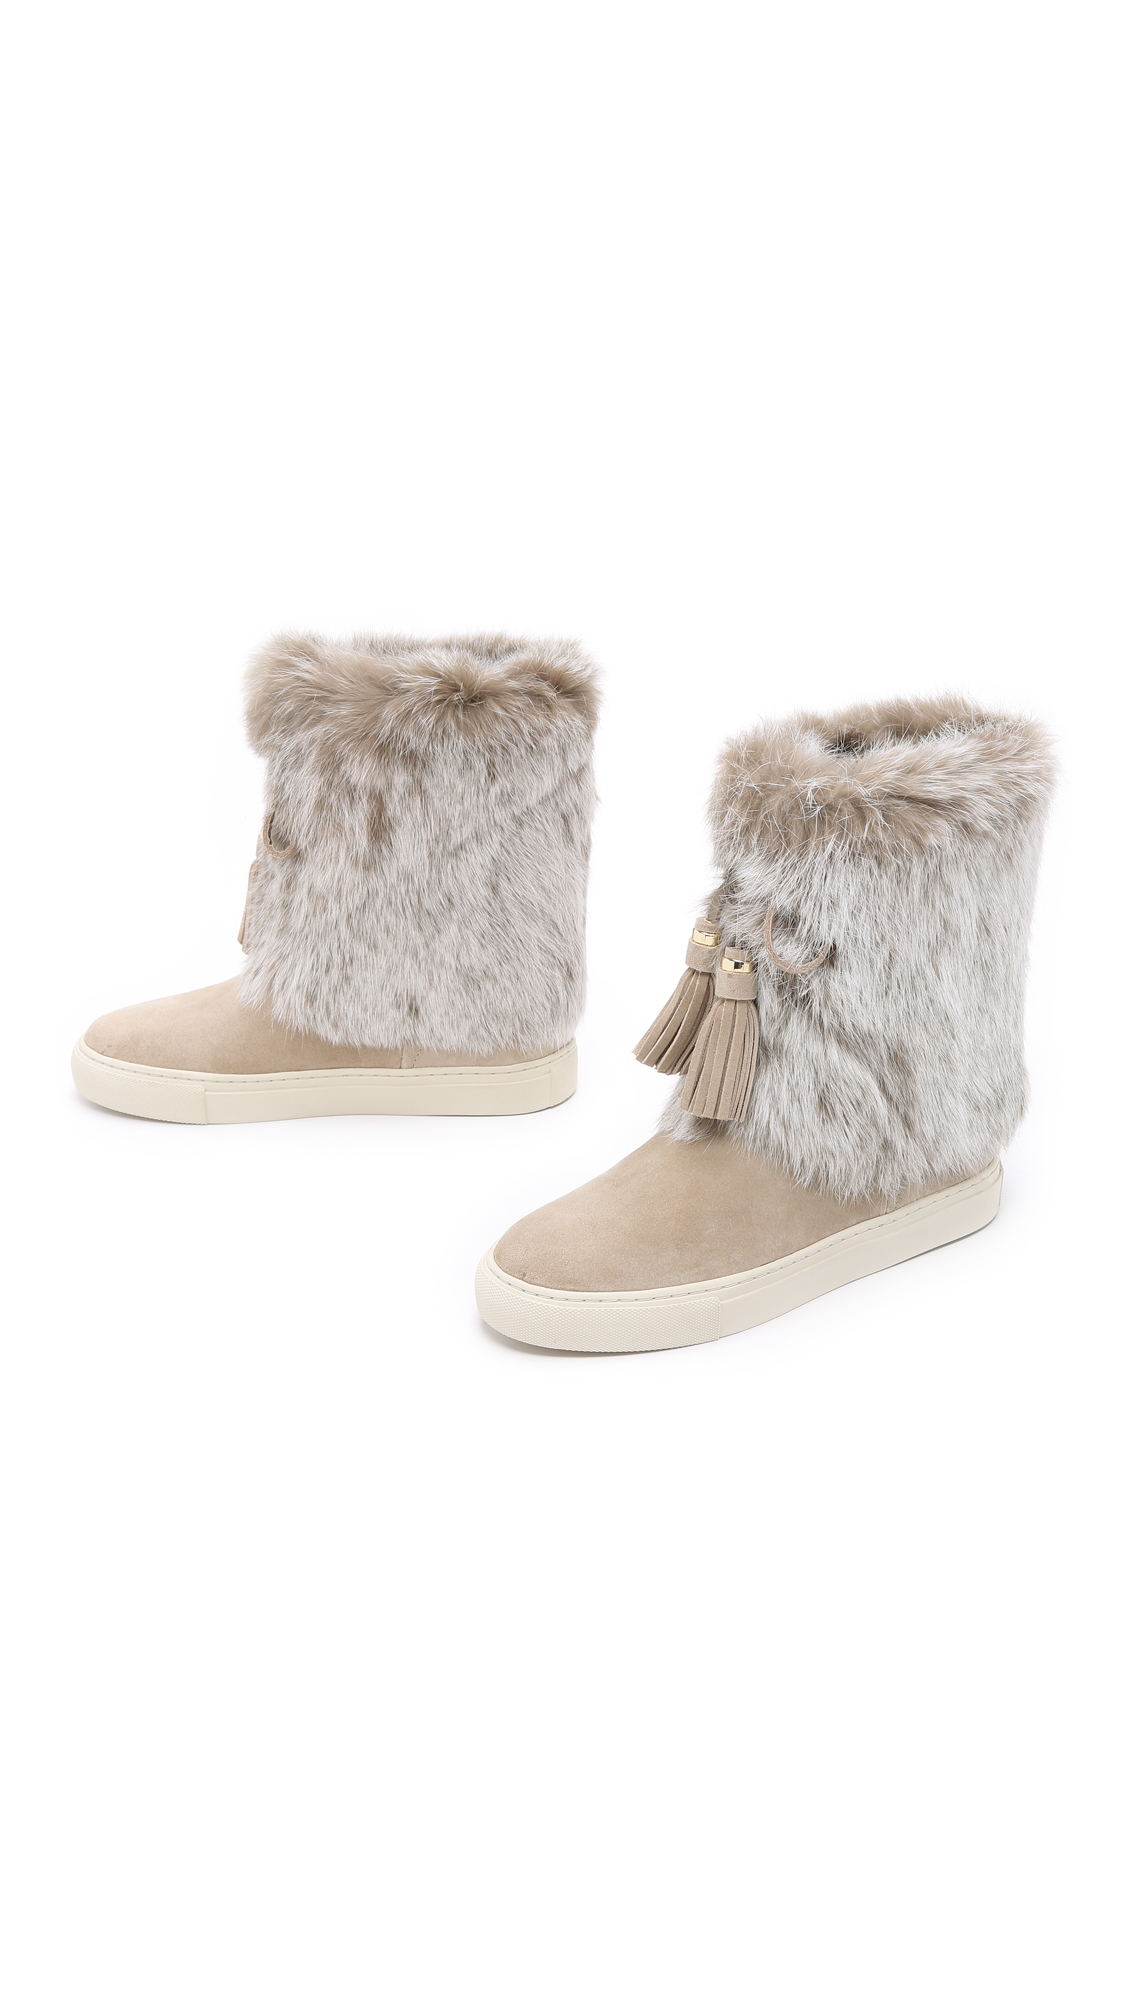 burch anjelica suede fur boots in lyst